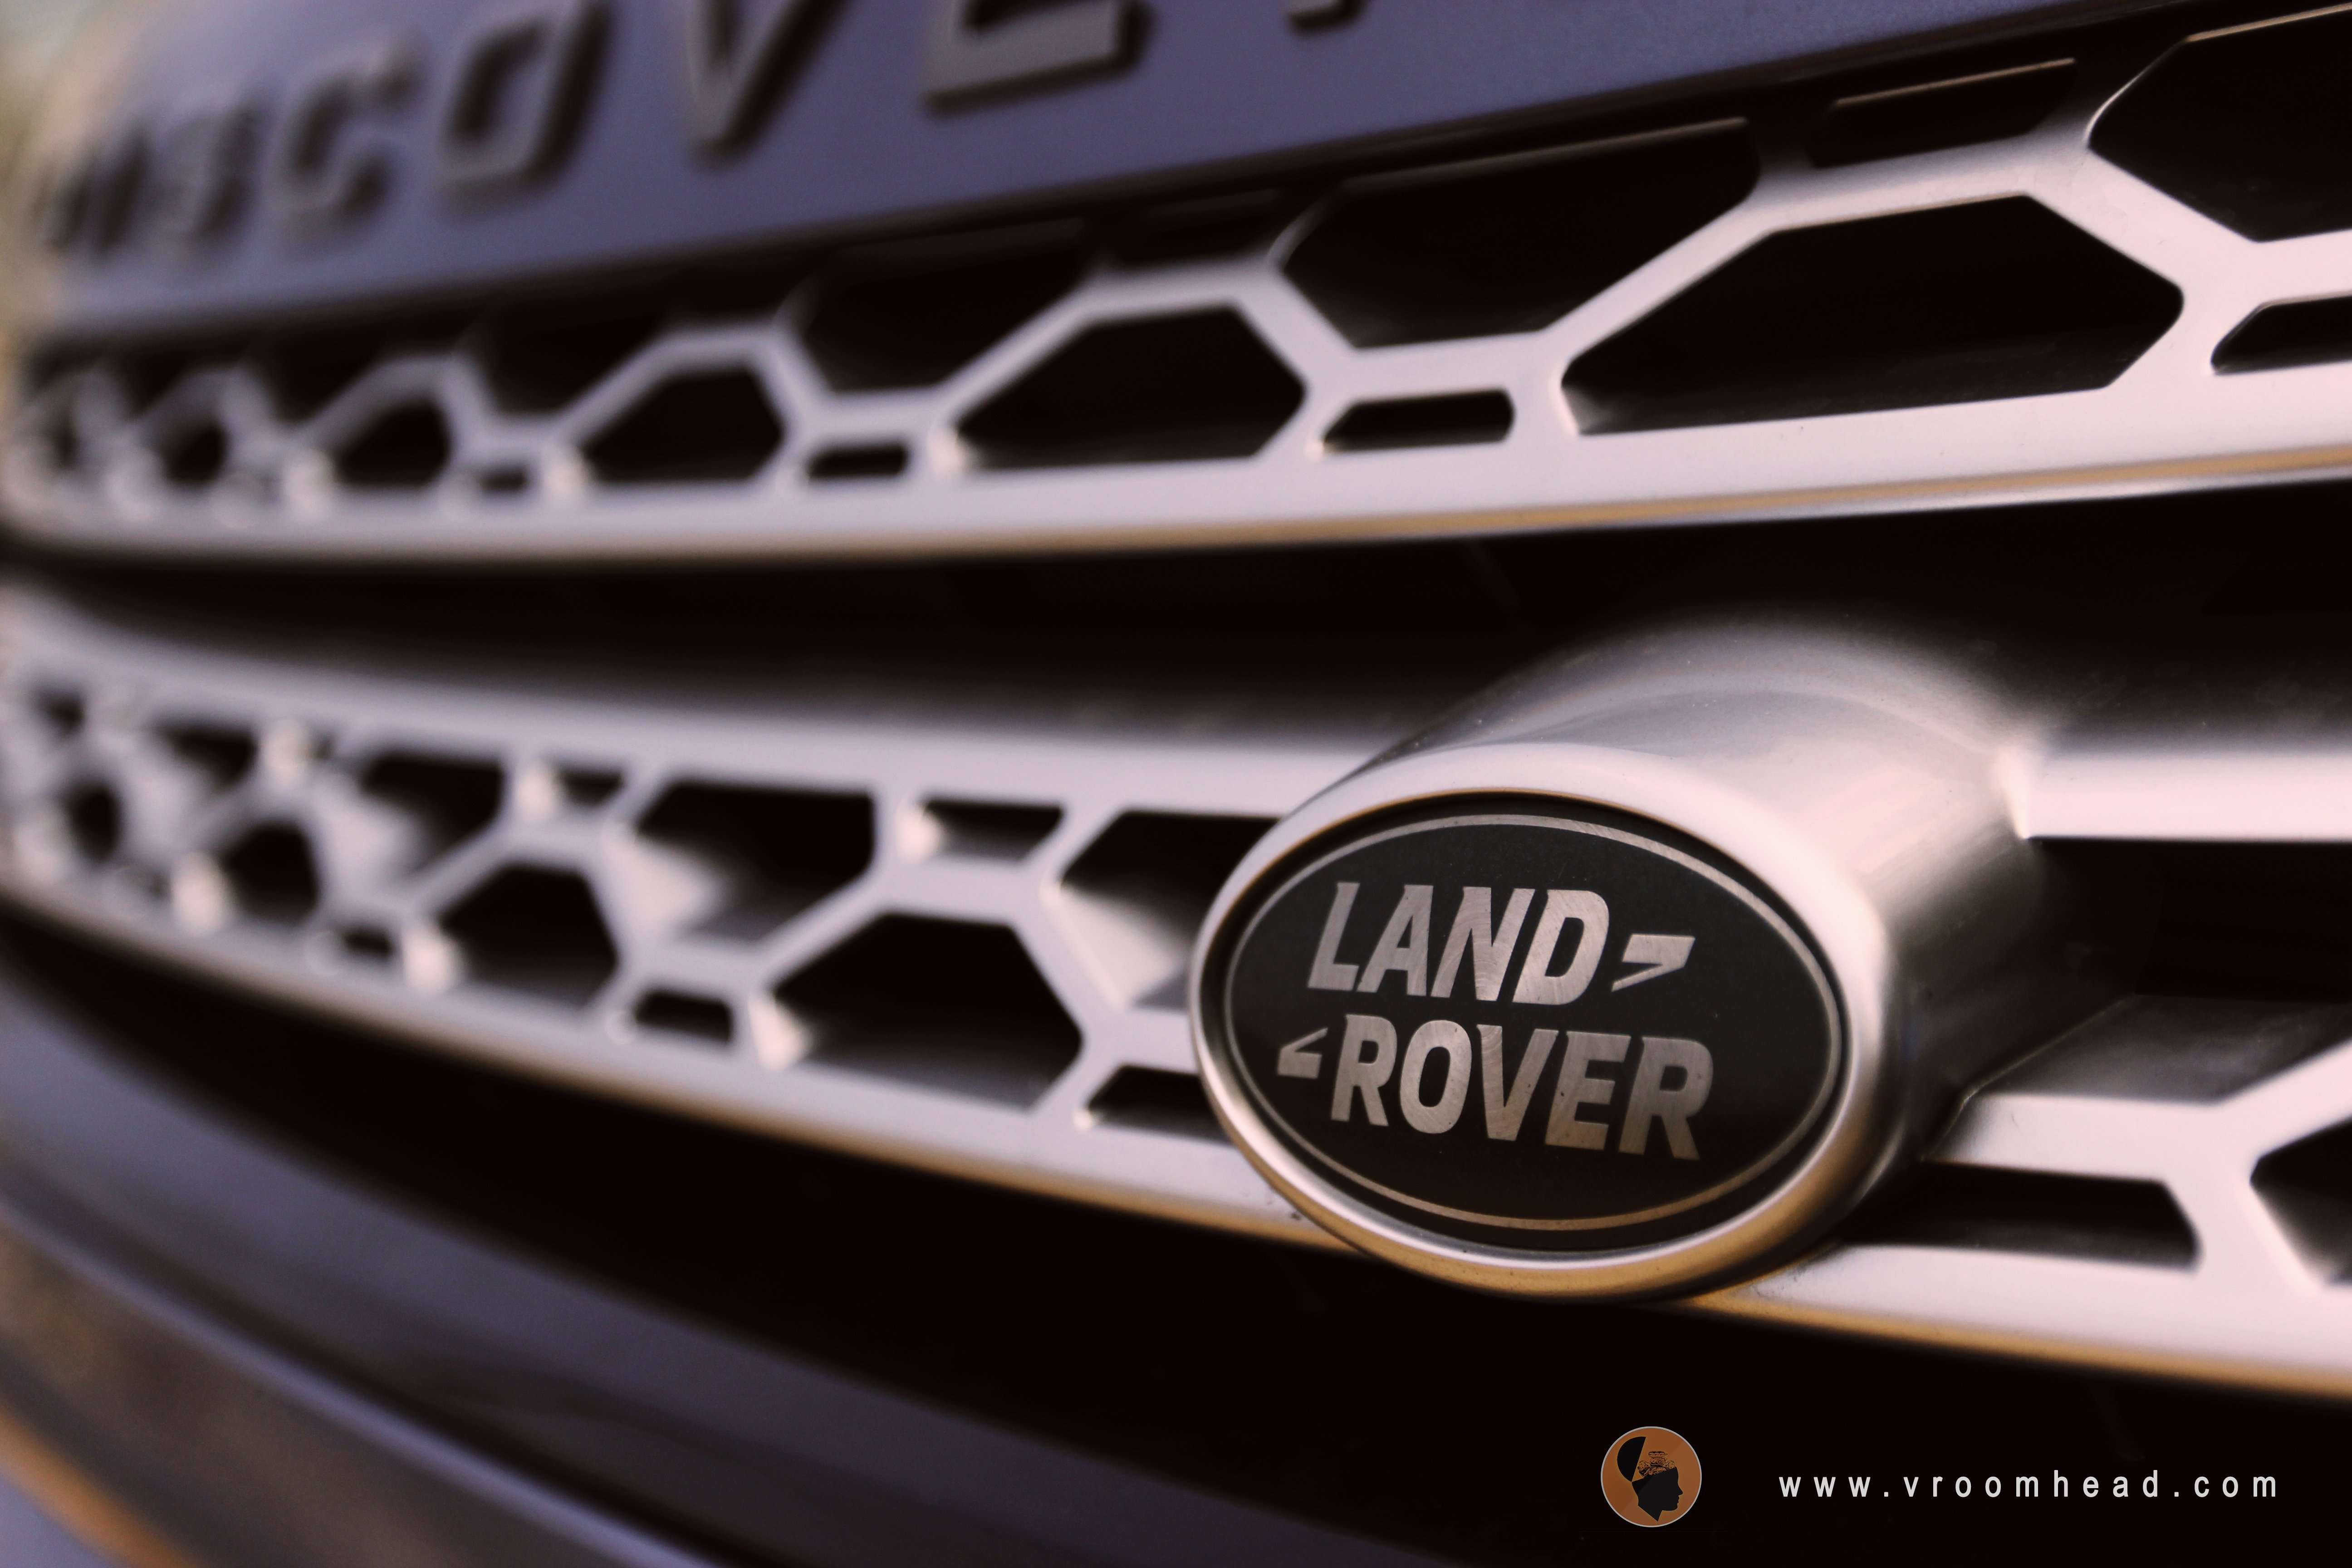 Discovery Sport Land Rover, Discovery sport review , Discovery sport mileage, Discovery sport HSE petrol review, Discovery sport price